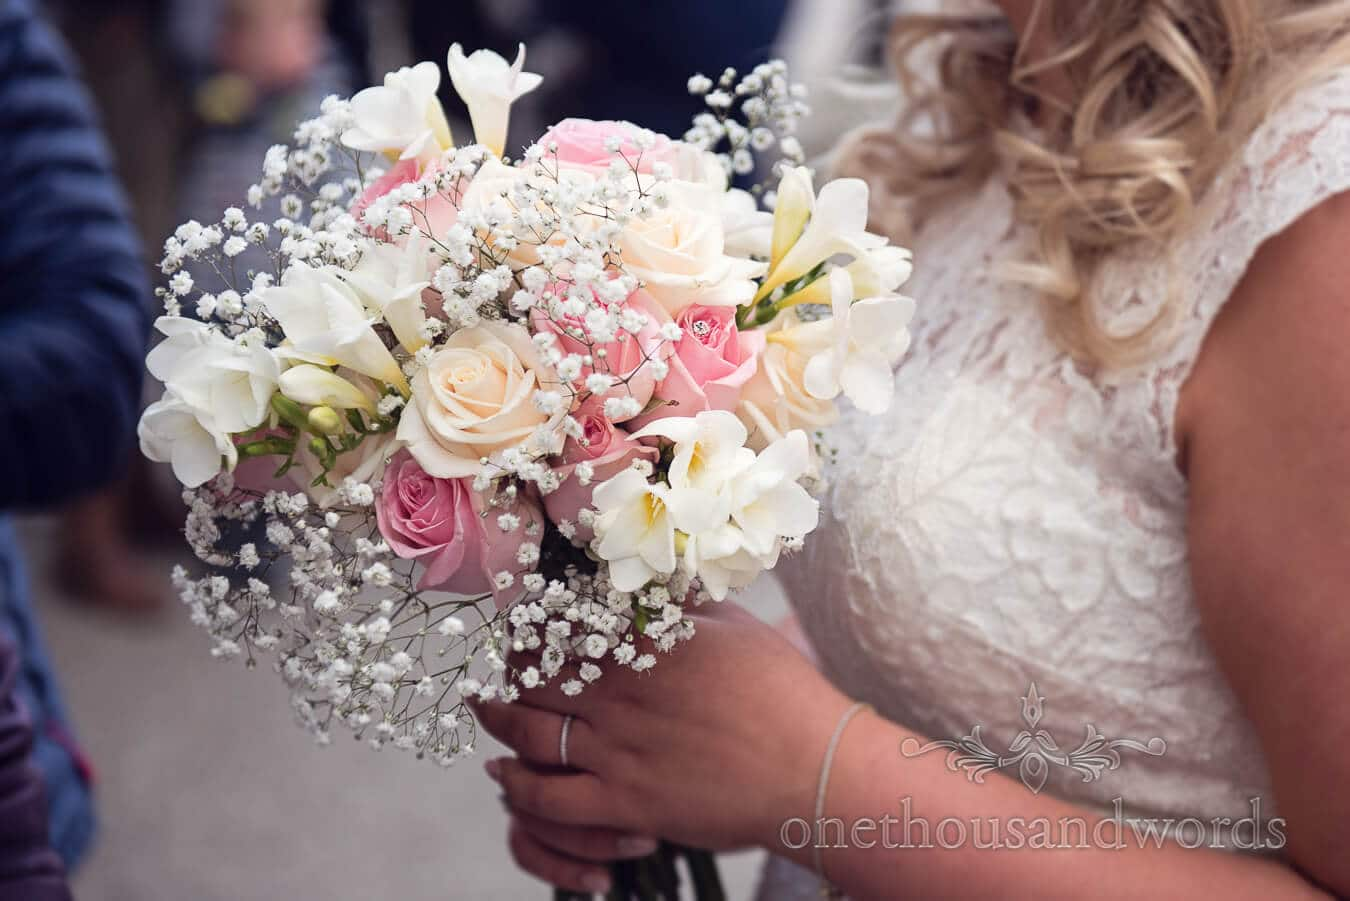 Bridle bouquet from Purbeck Golf Club Wedding